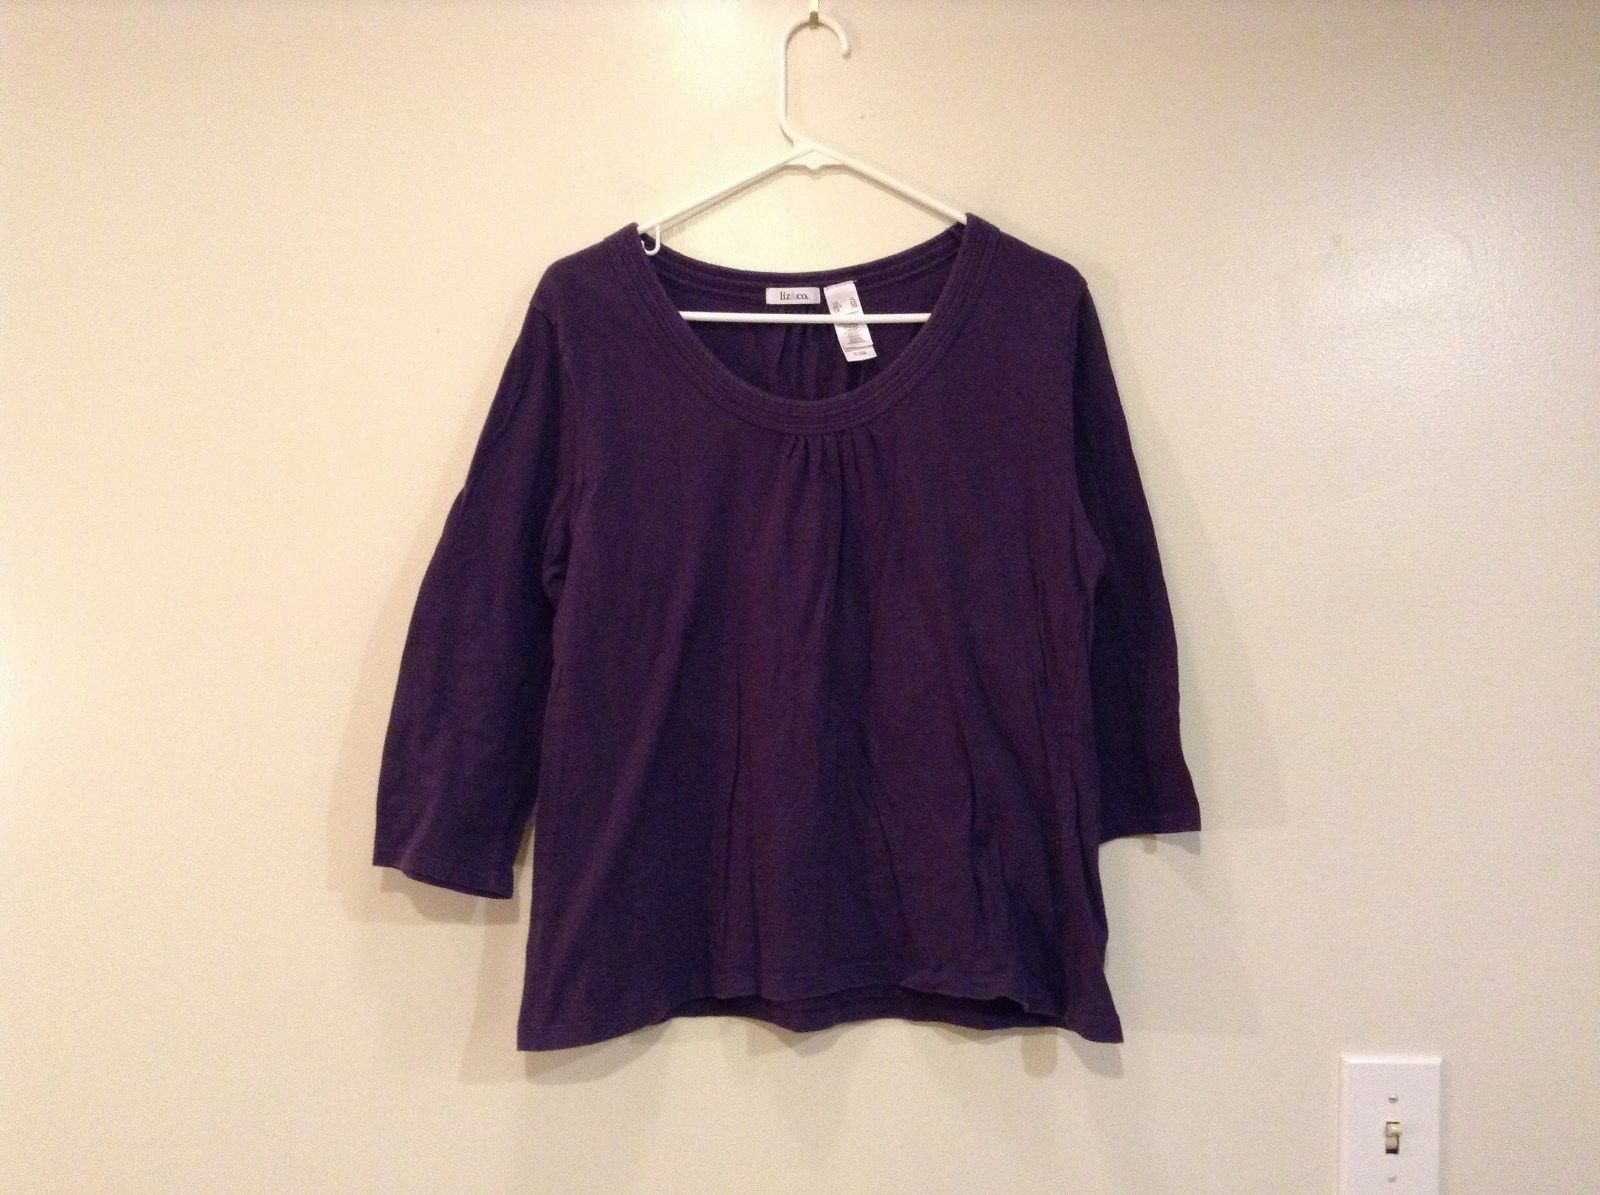 Liz and Company Dark Violet Boat Neck Cotton Shirt Size XL Decorative Stitches